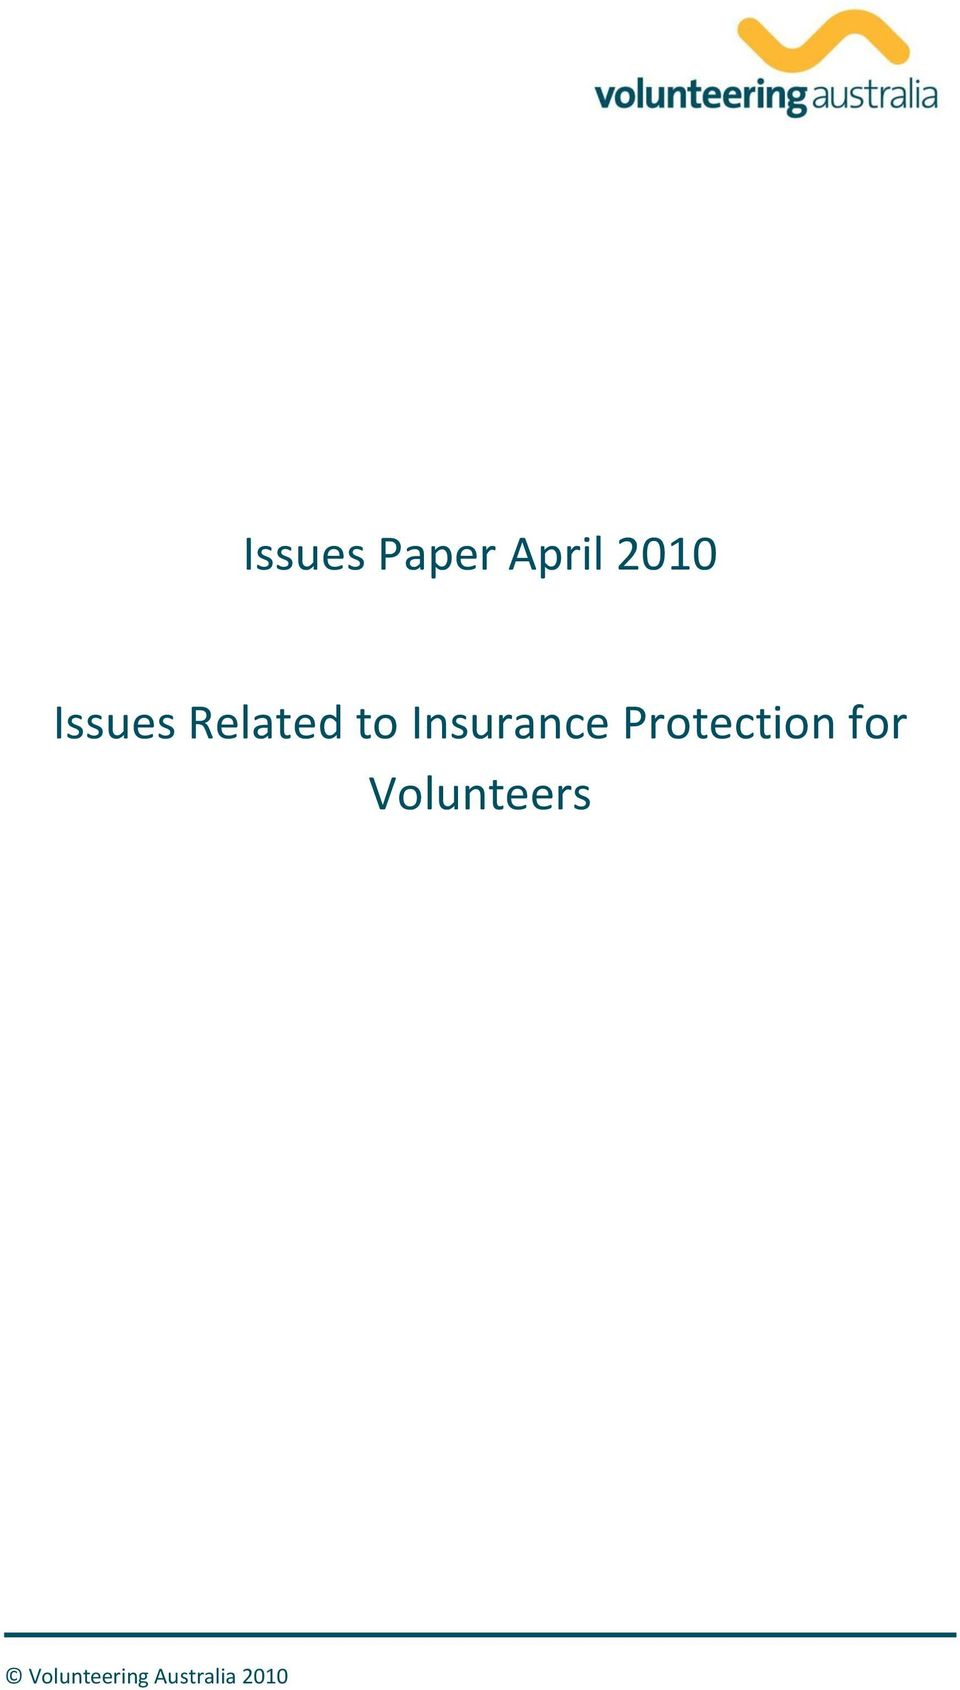 Insurance Protection for